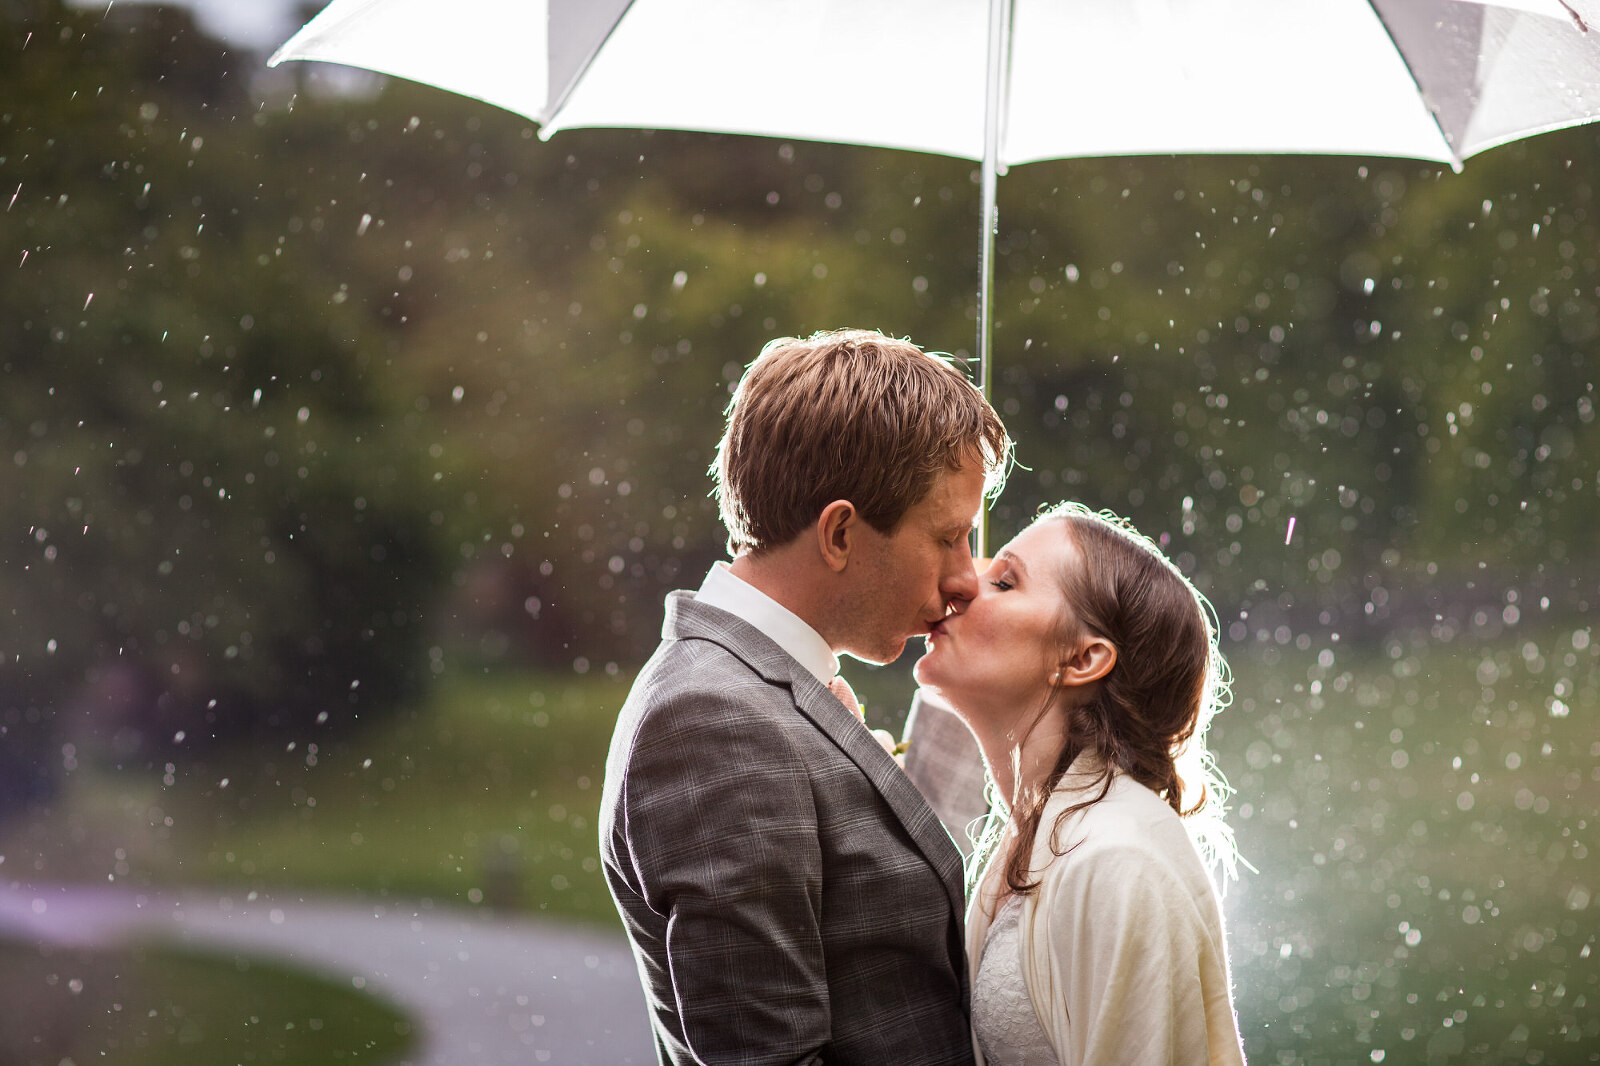 Rainy Wedding Photography - Bride & Groom Kissing under an umbrella